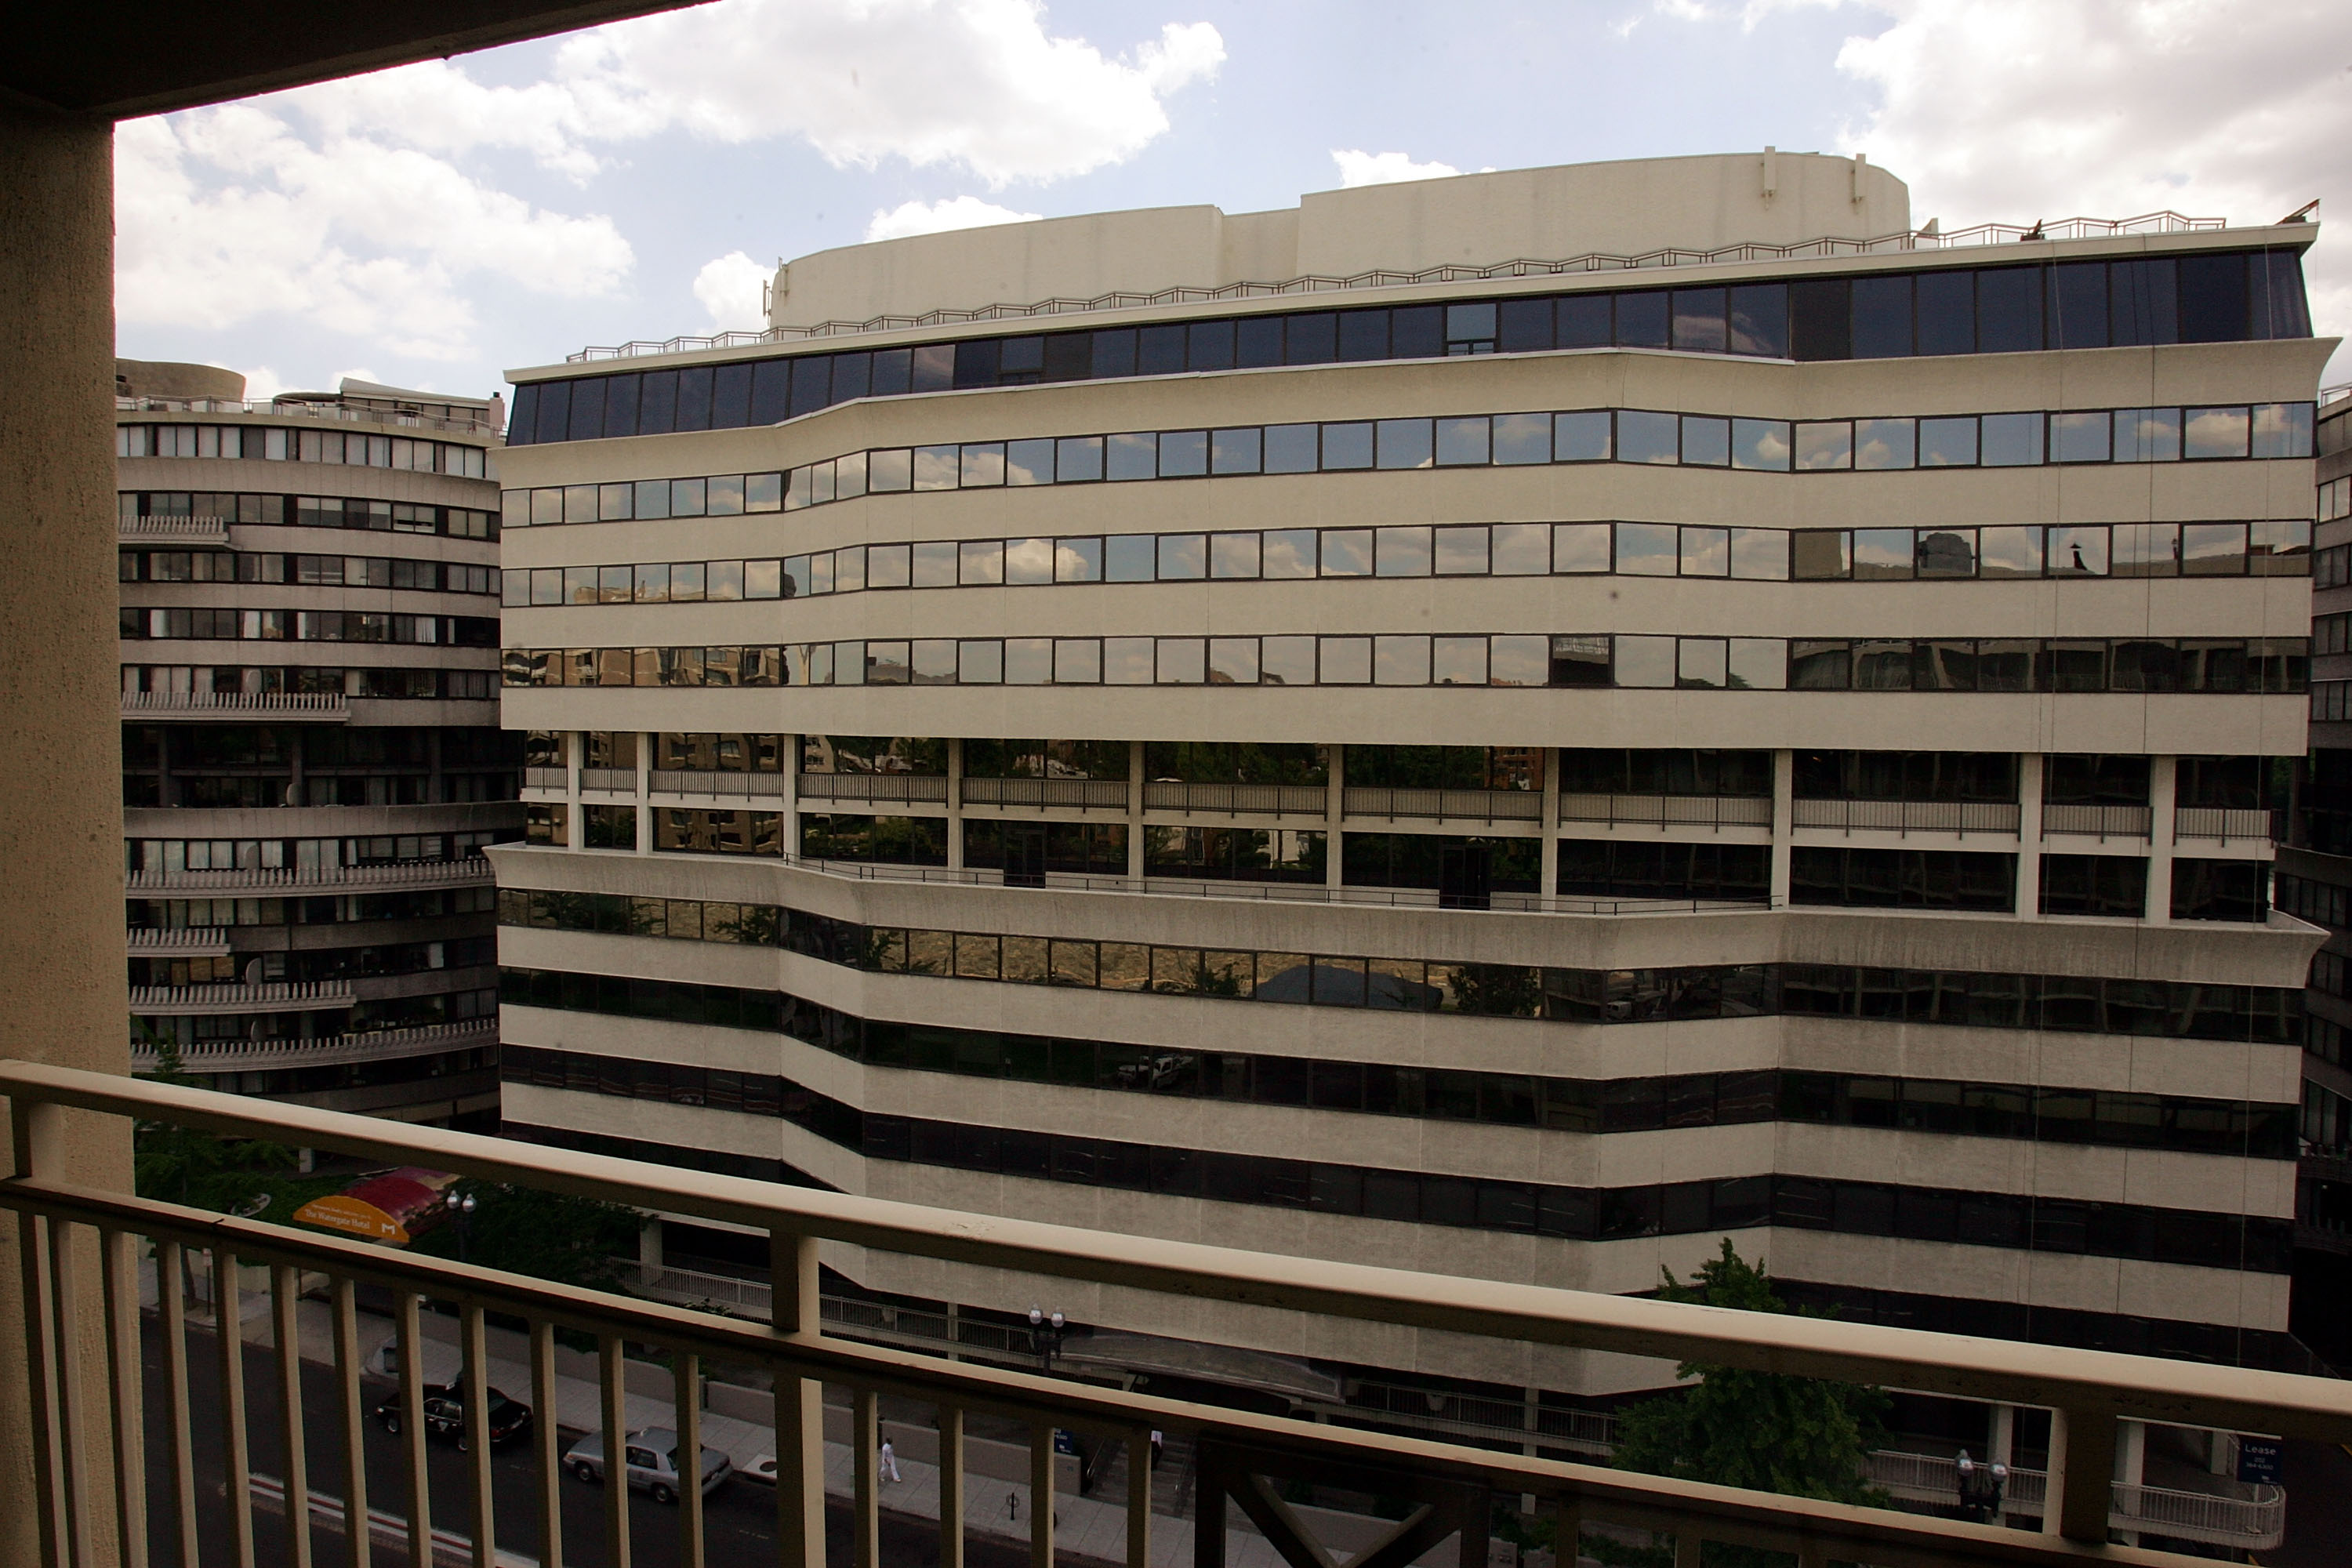 A 1960s office building with horizontal glass panels seen from the balcony of a building across the street.